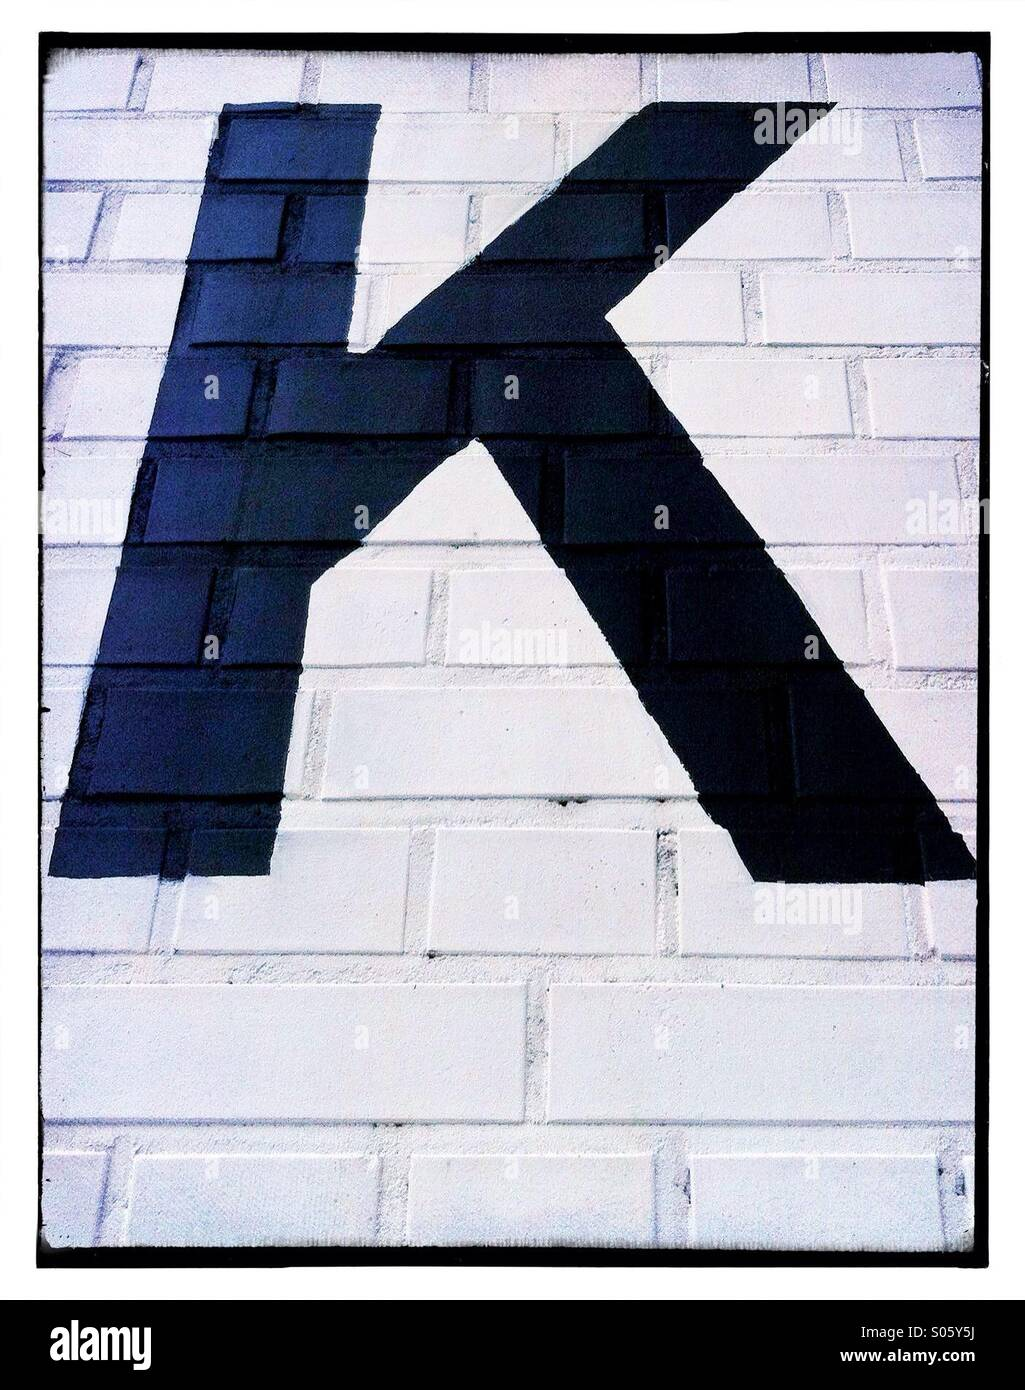 Letter 'K' painted on brick wall - Stock Image